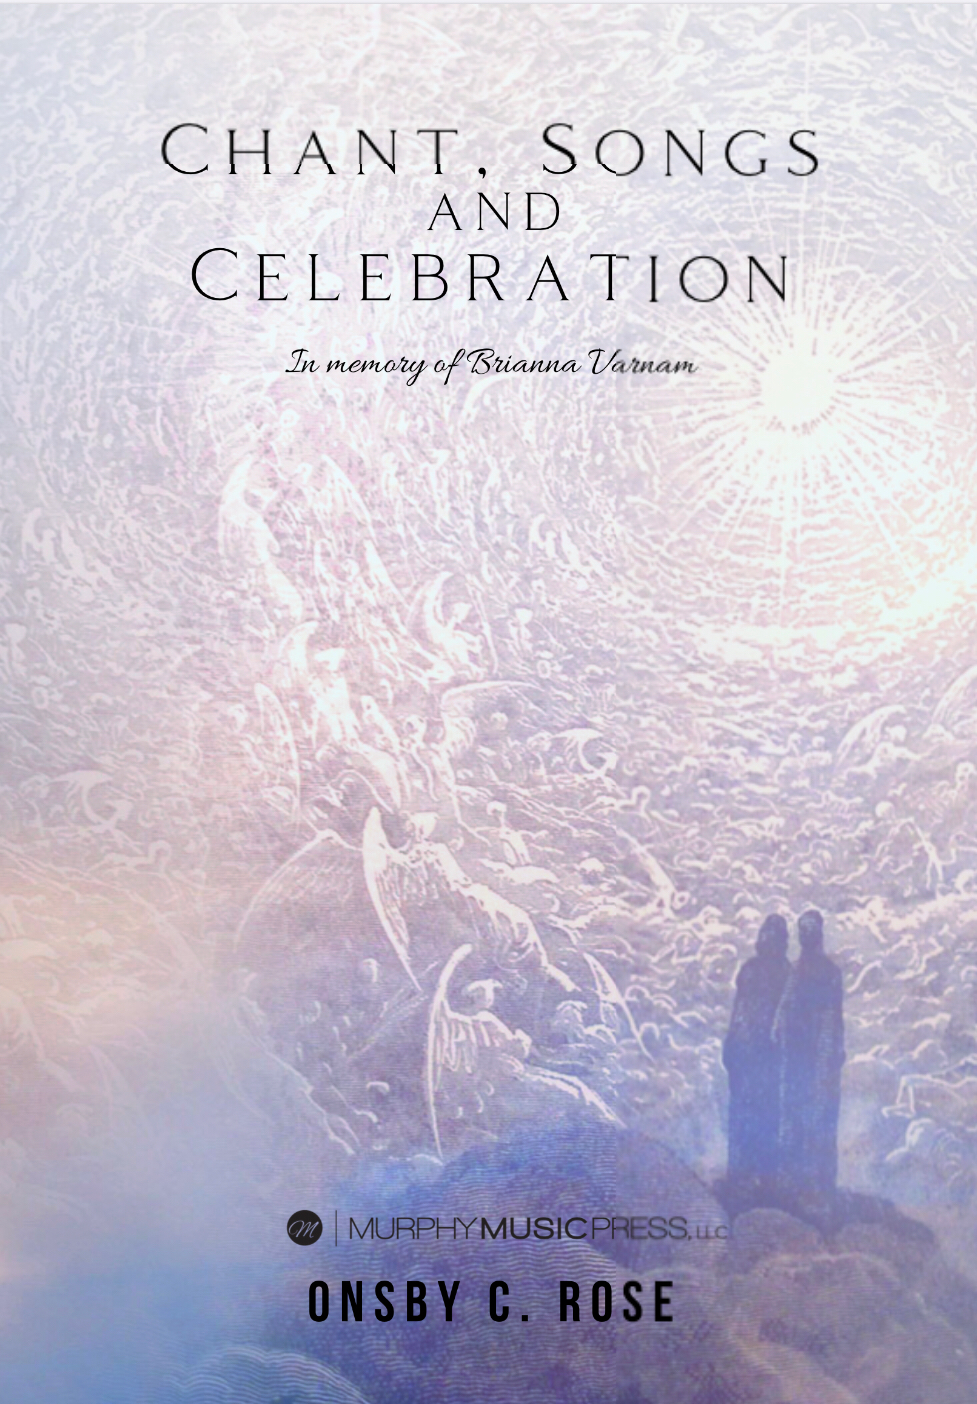 Chant, Songs, And Celebration by Onsby C. Rose